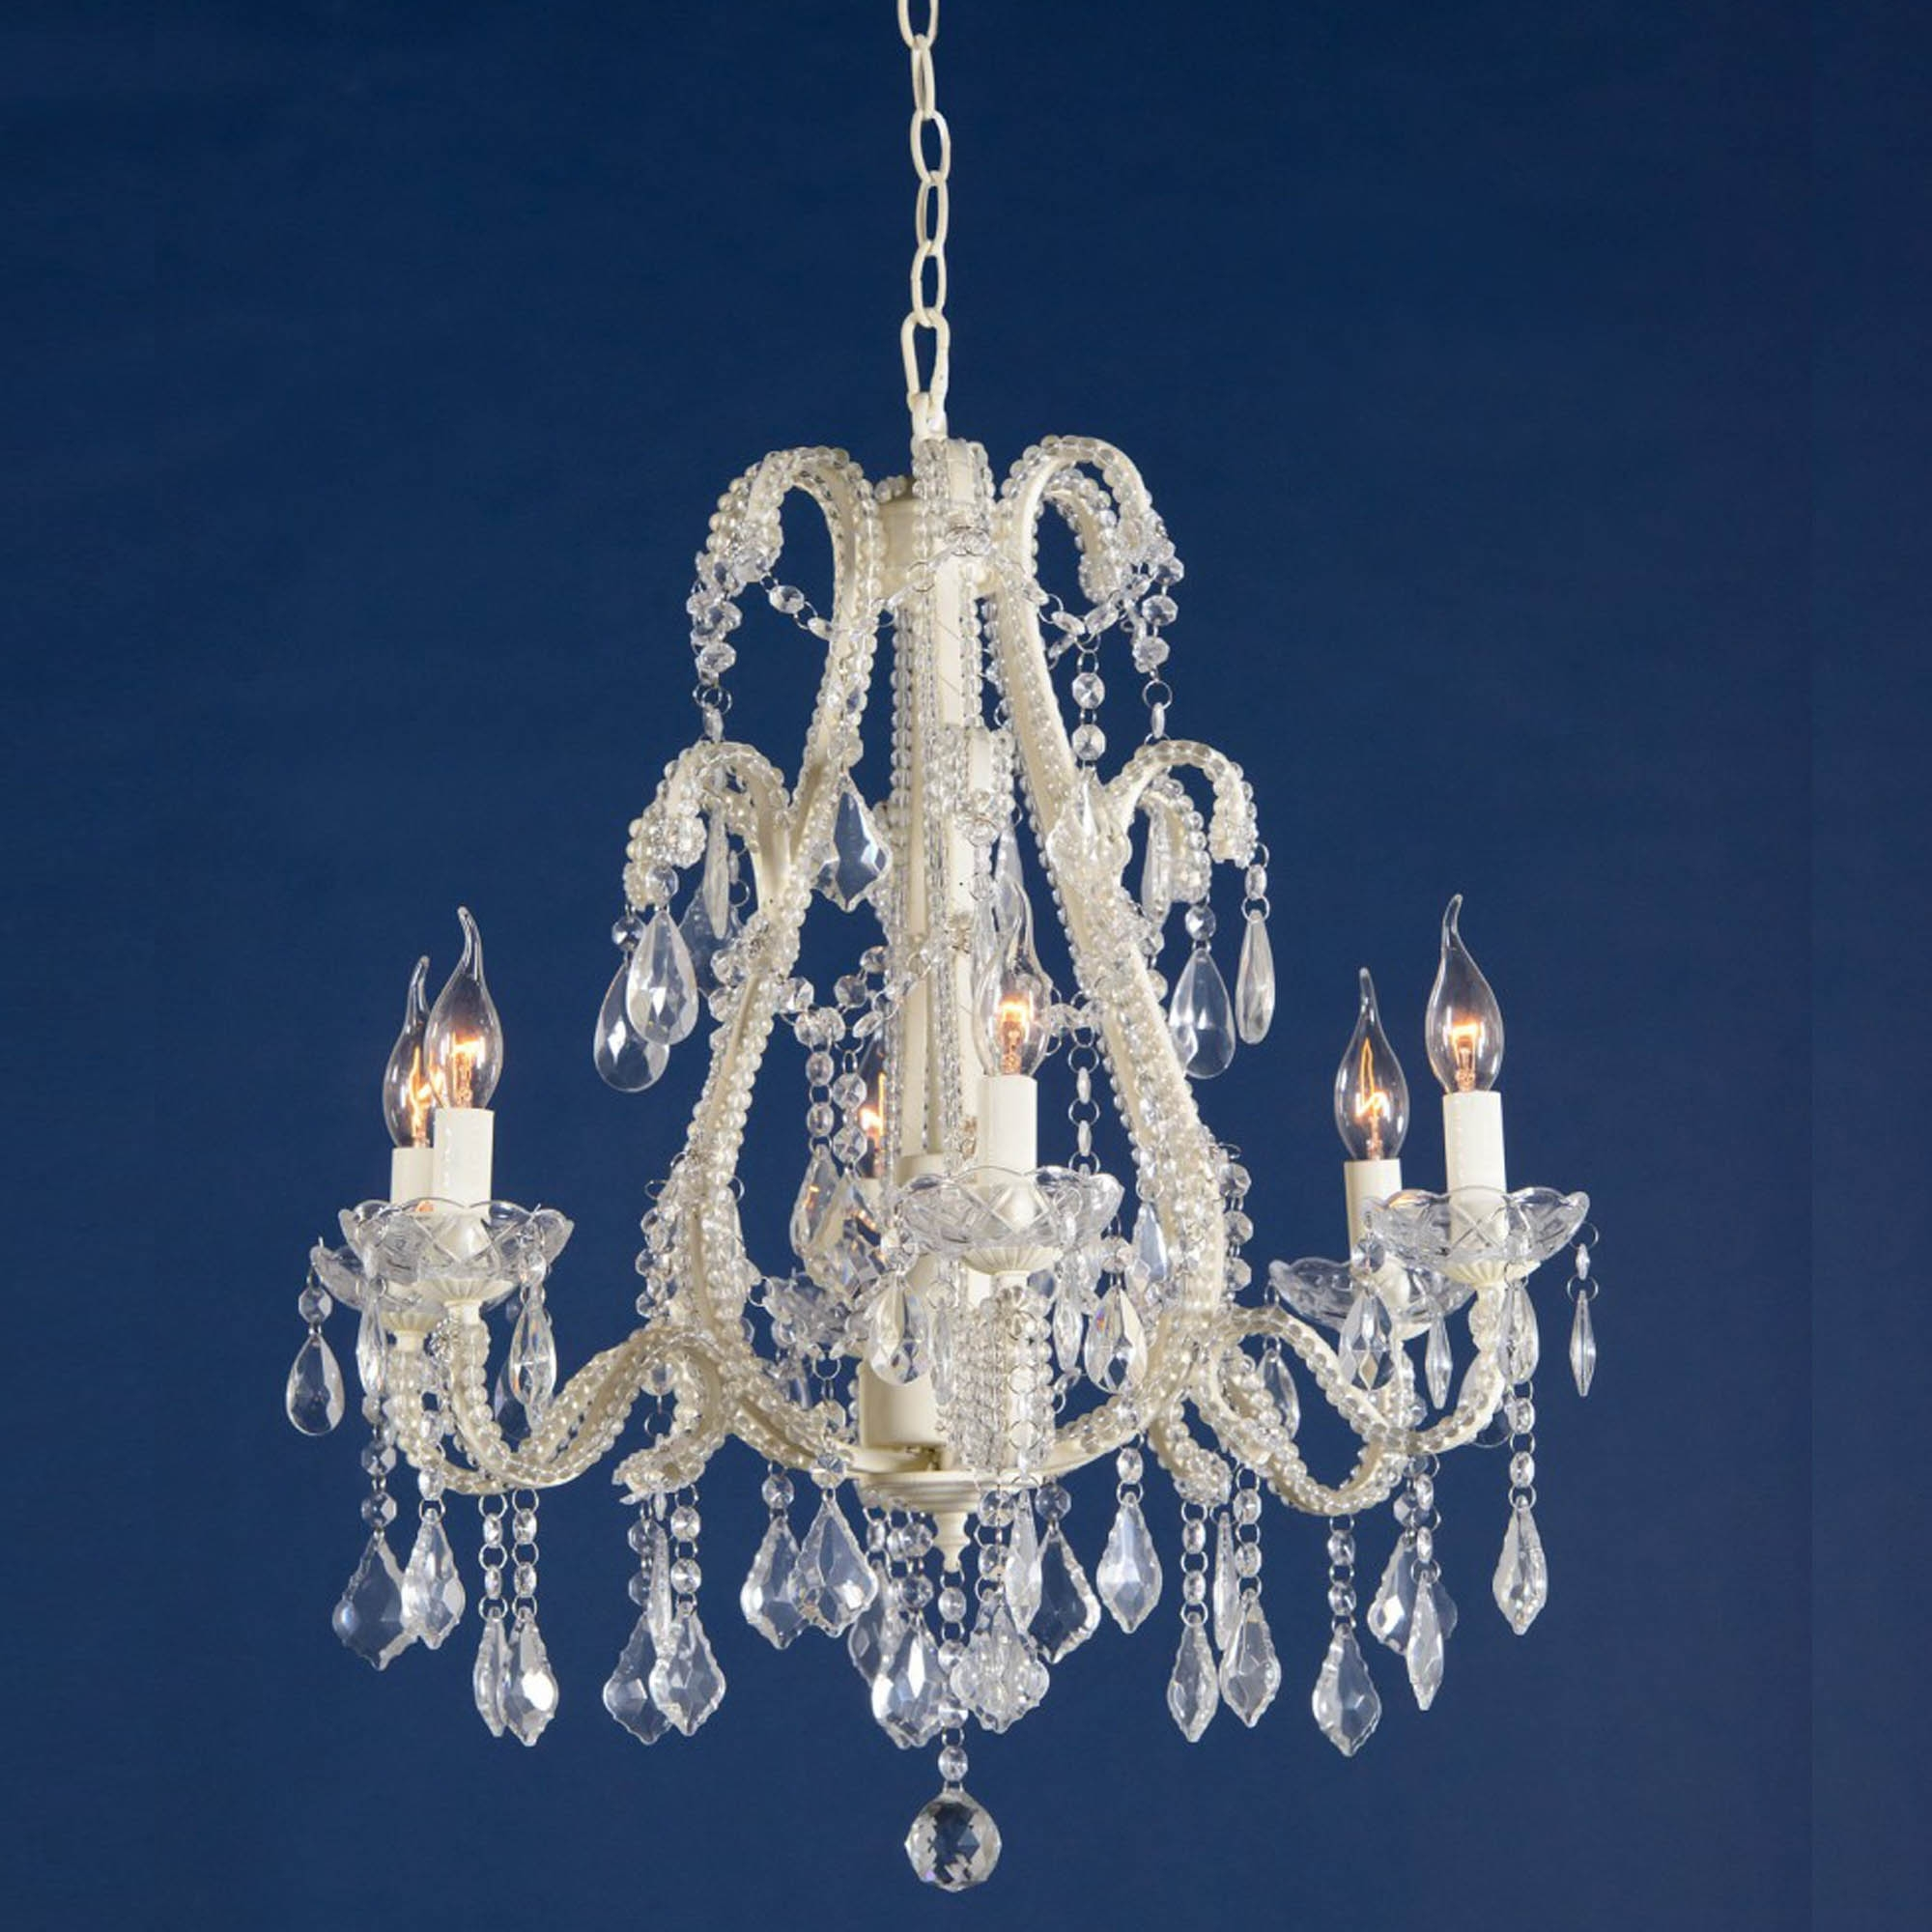 Antique style chandeliers chandelier design ideas marie therese cream antique french style chandelier aloadofball